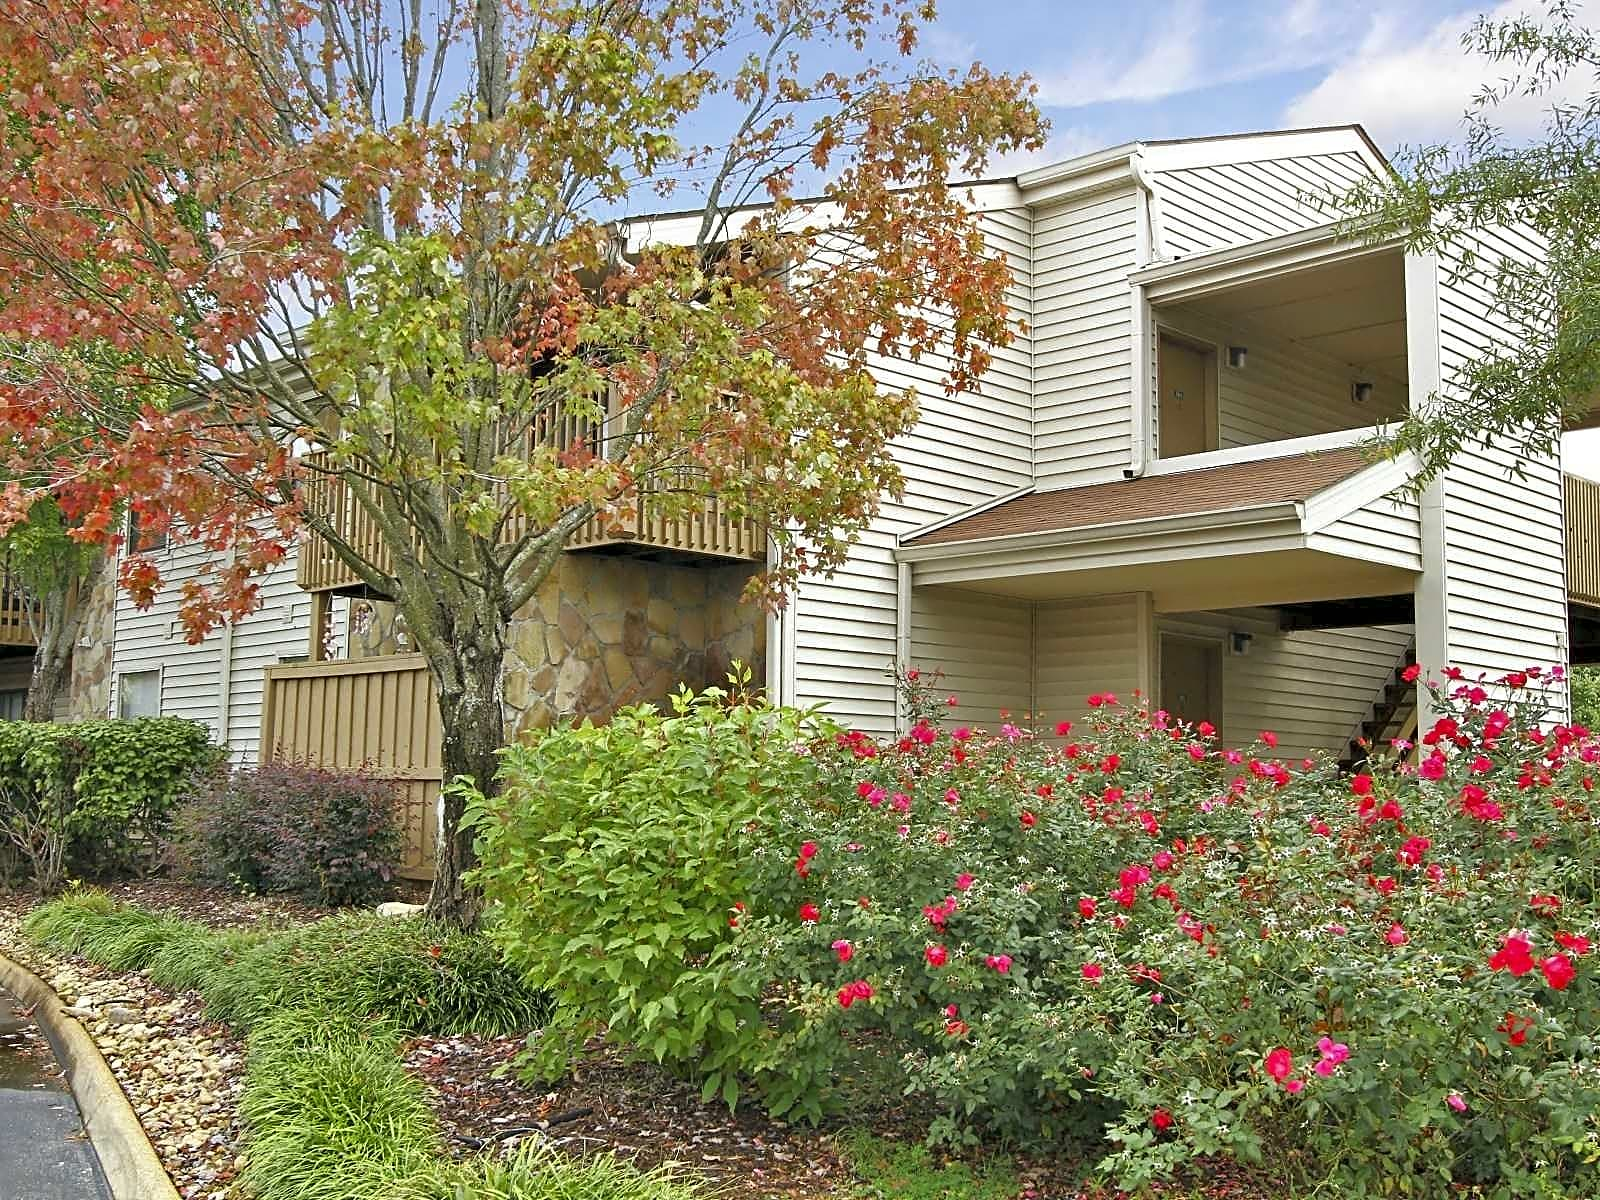 Photo: Chattanooga Apartment for Rent - $628.00 / month; 2 Bd & 2 Ba